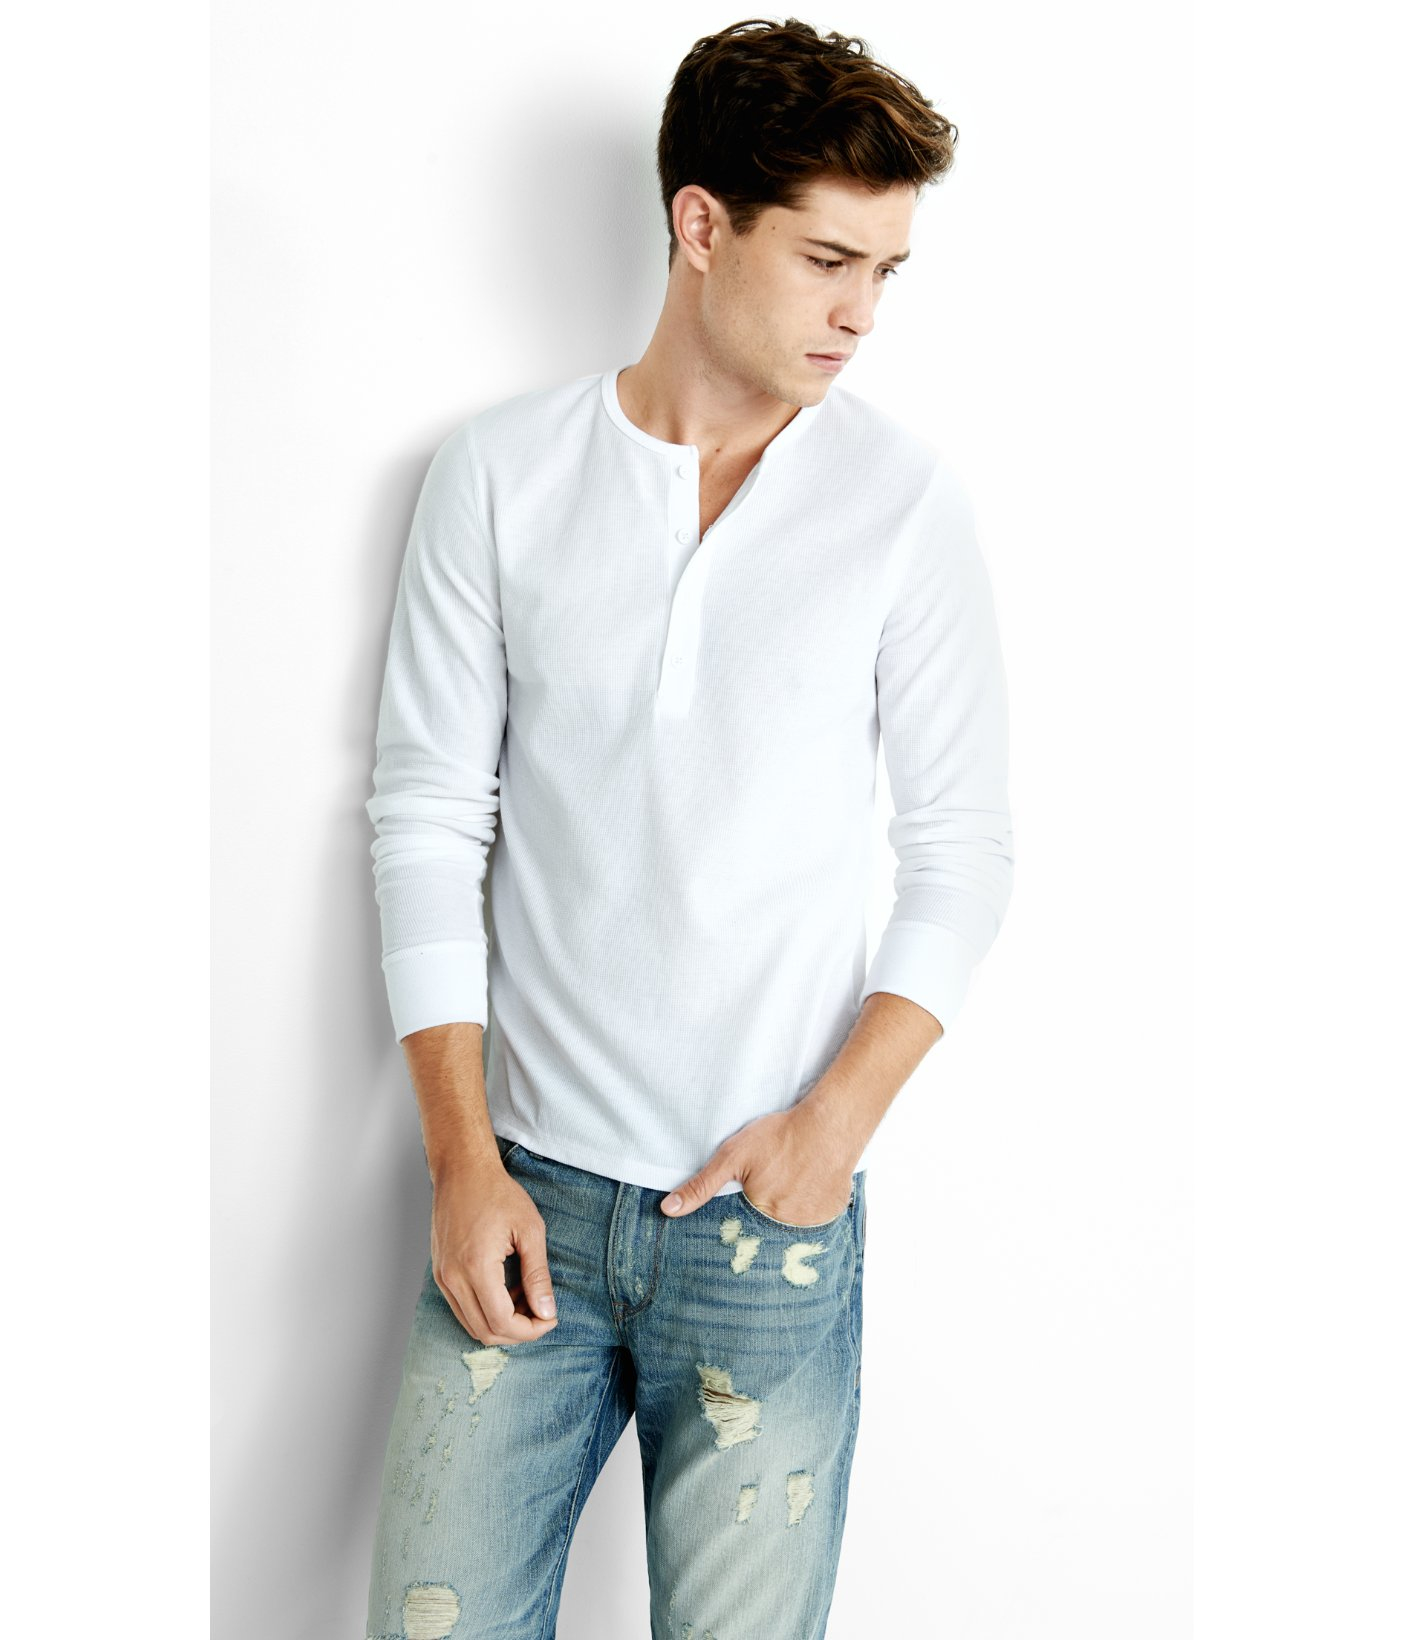 37beb62bbb38 Lyst - Express Long Sleeve Waffle Knit Henley T-shirt in White for Men